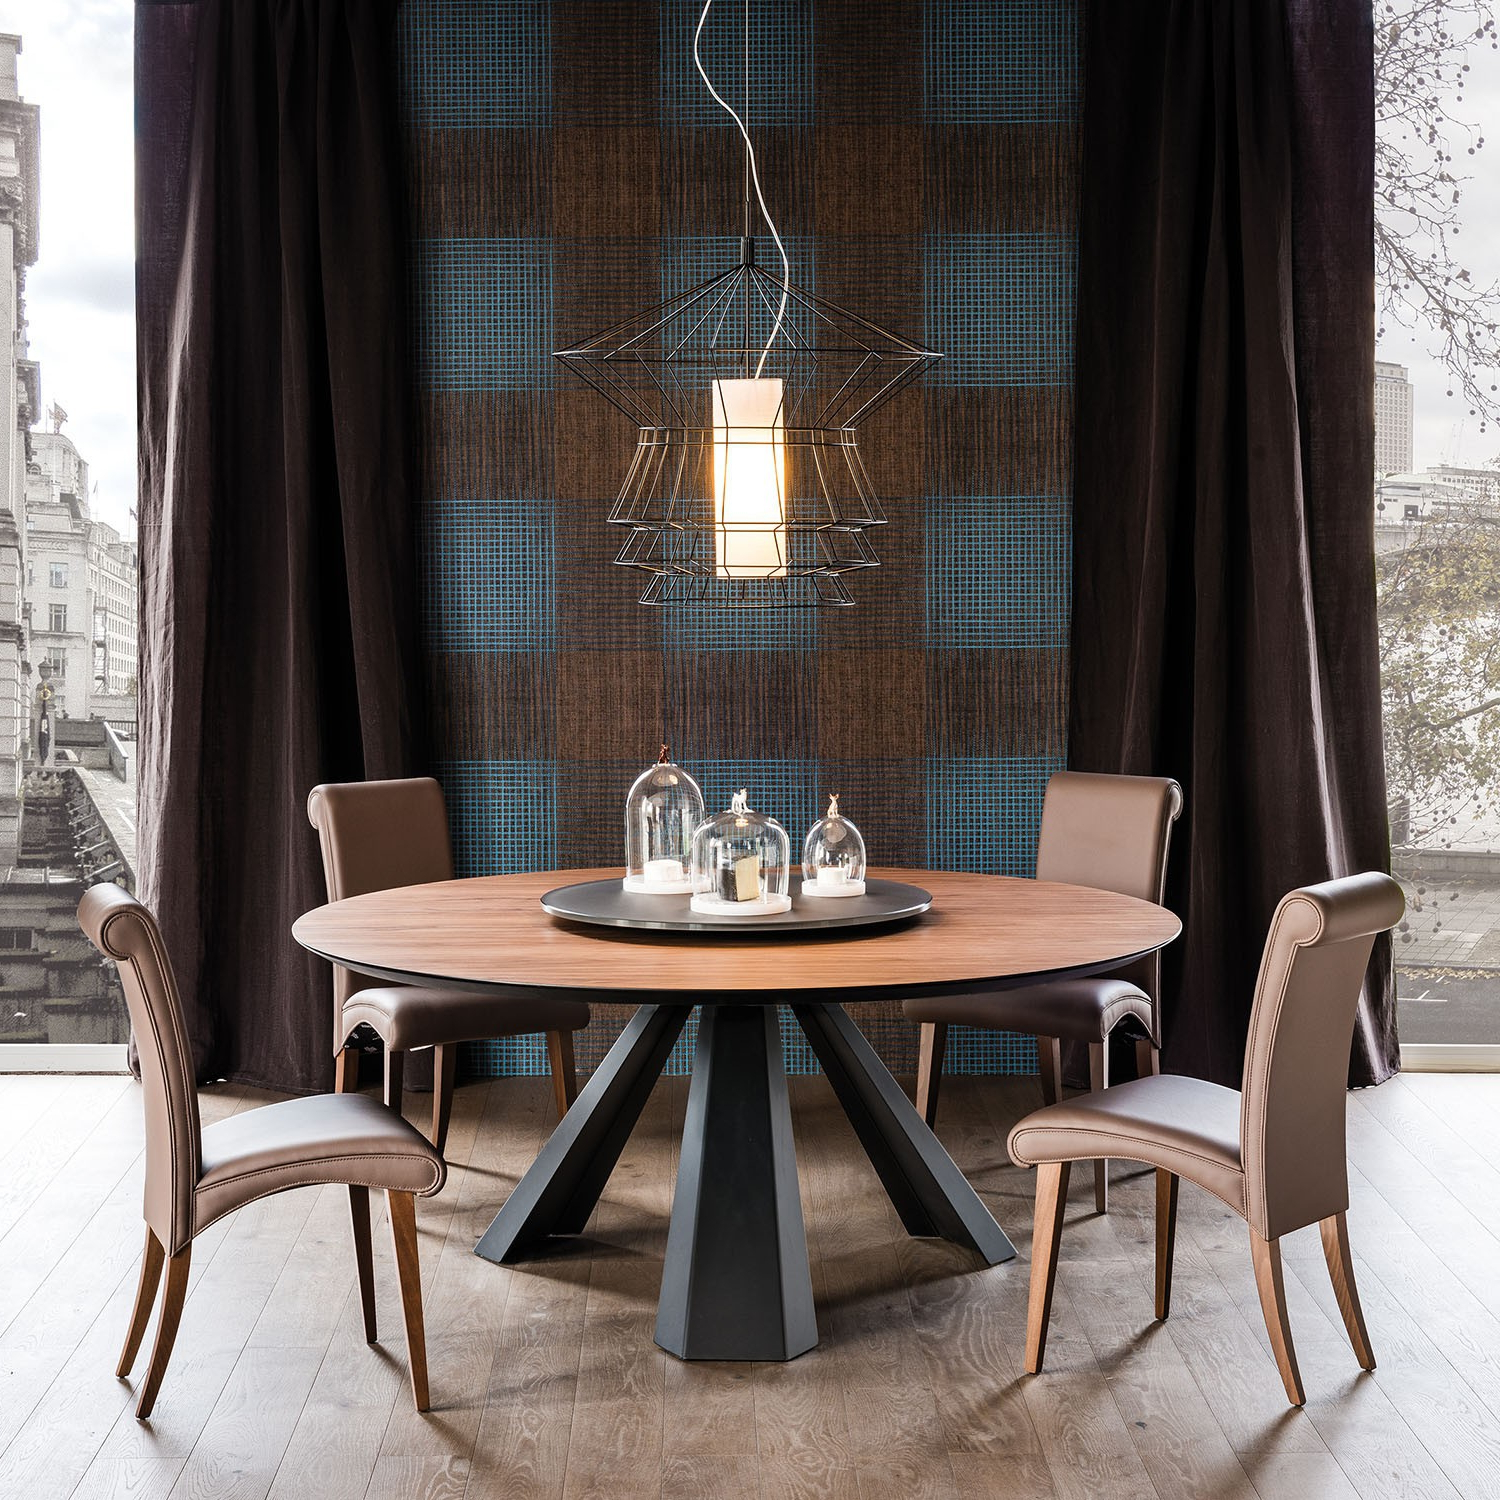 Eliot Round Dining Table, Cattelan Italia – Neo Furniture Intended For Popular Neo Round Dining Tables (View 28 of 30)